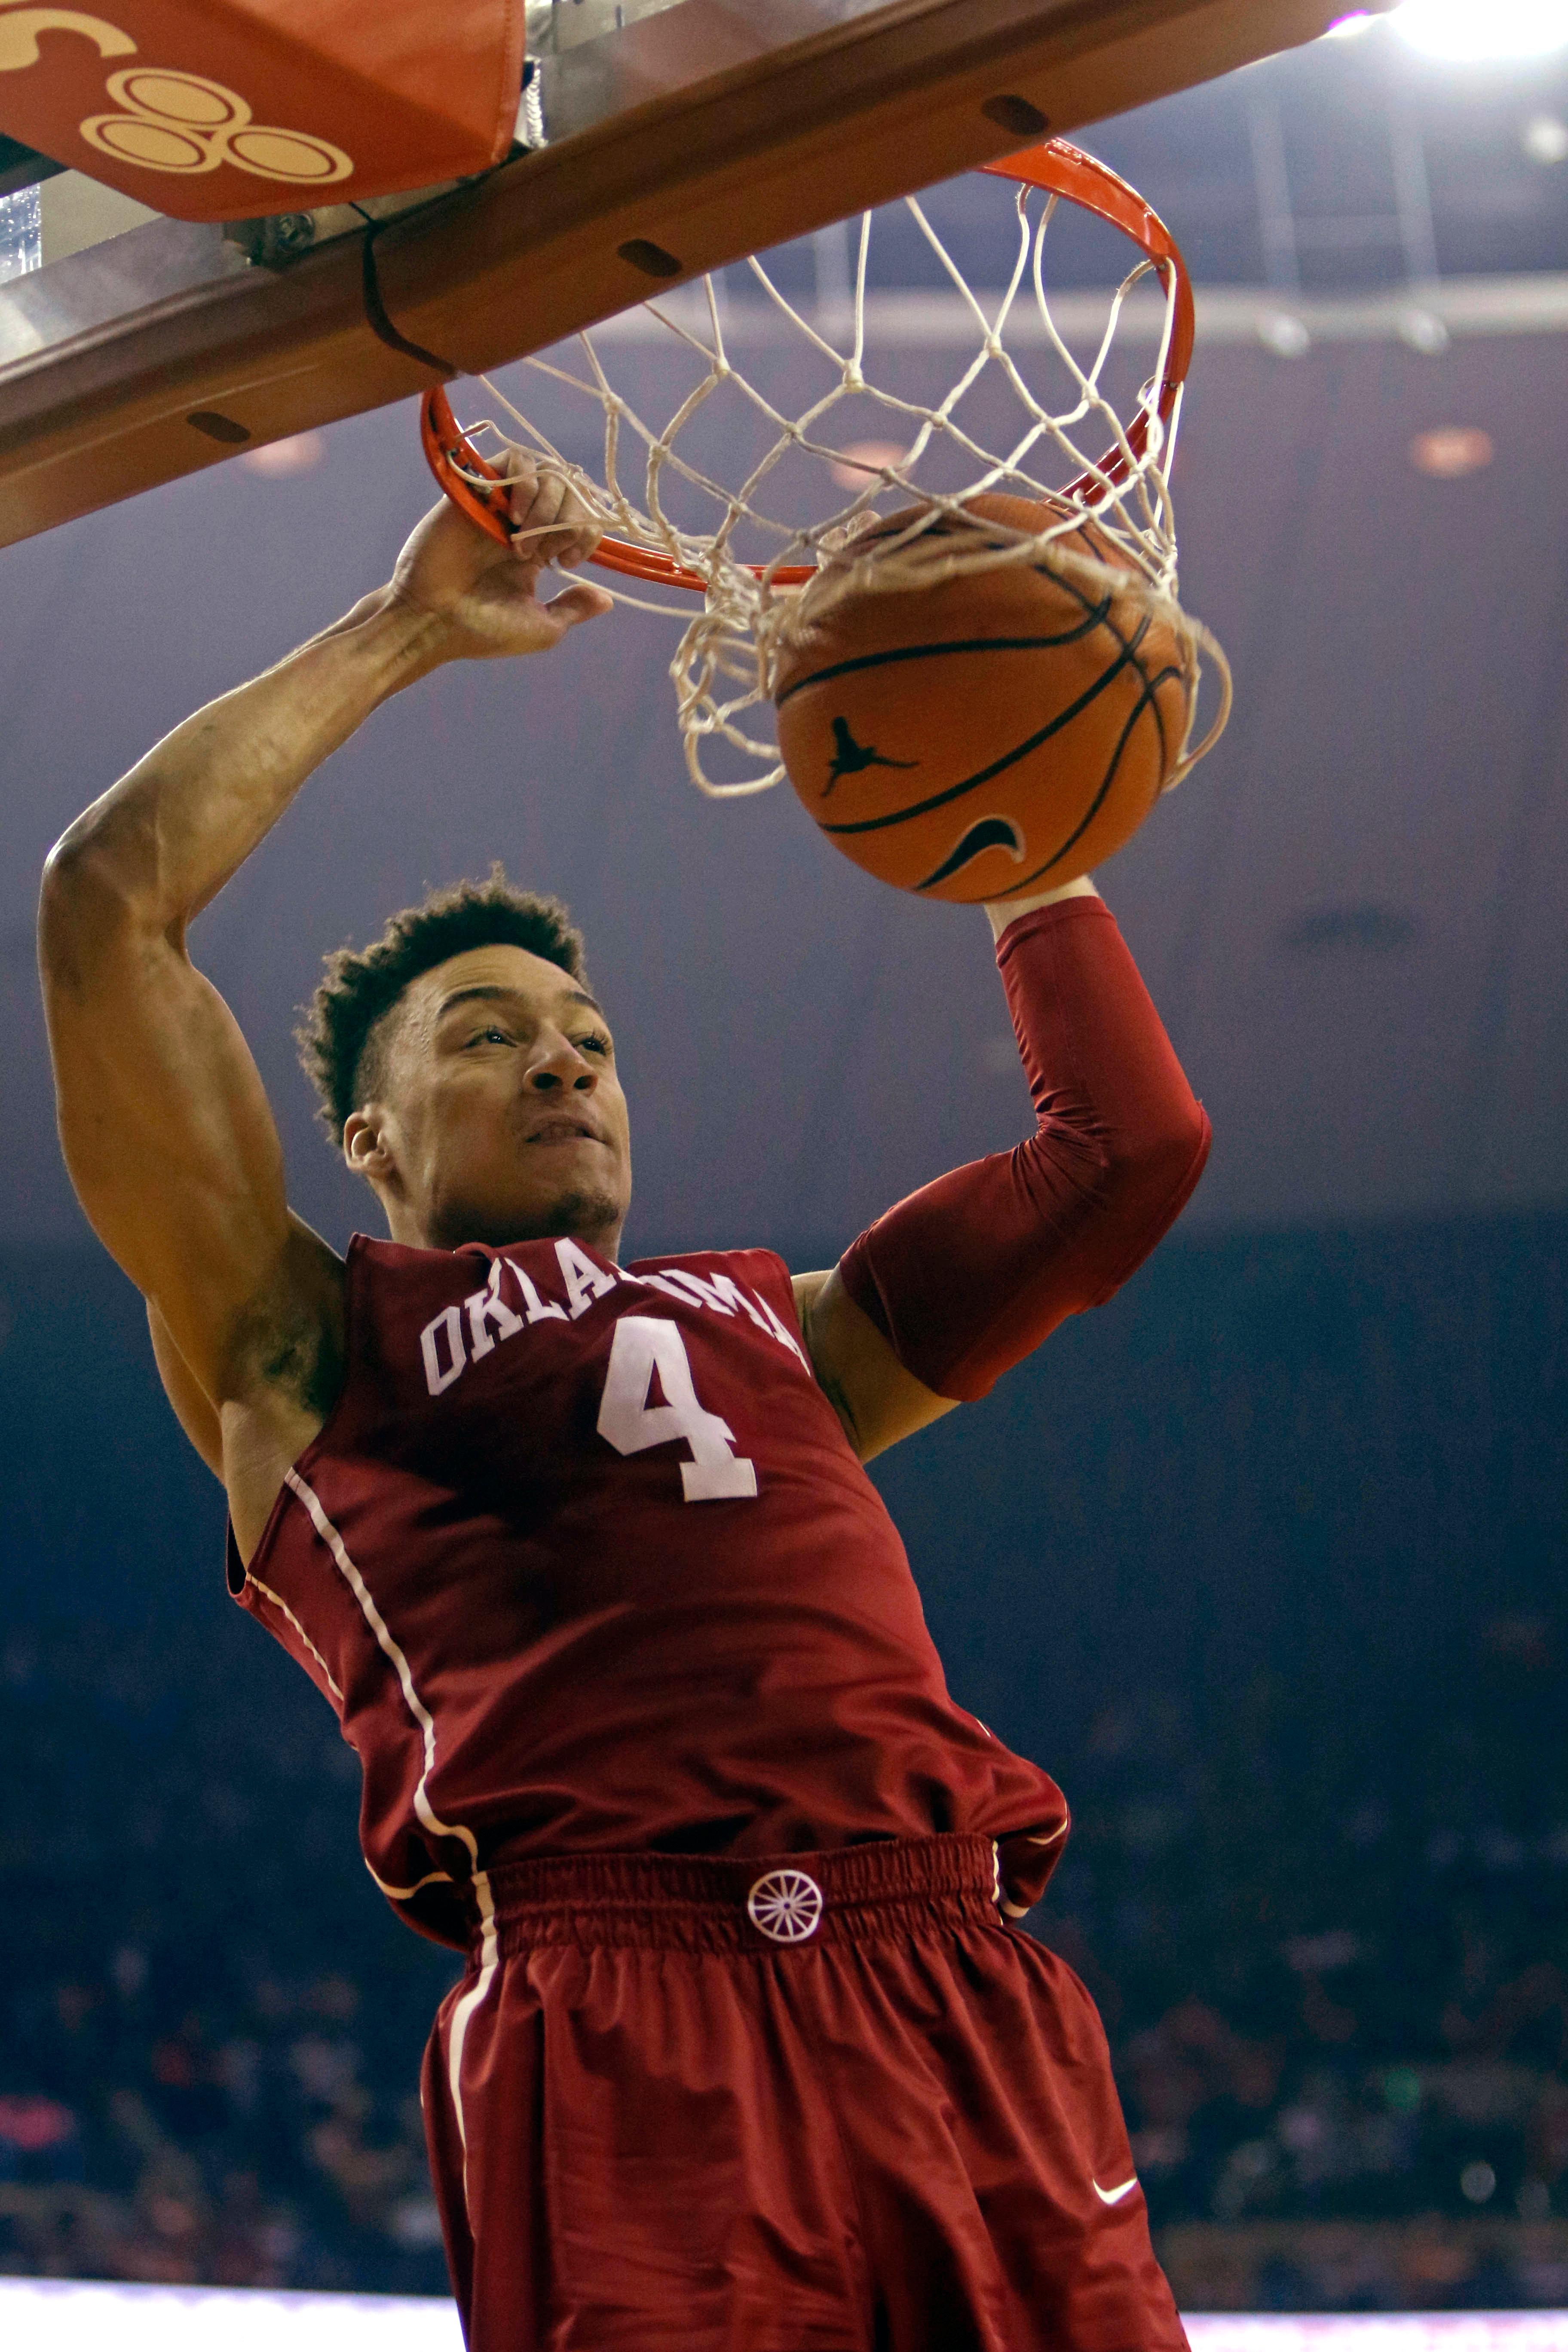 Oklahoma center Jamuni McNeace dunks during the first half of an NCAA college basketball game against Texas, Saturday, Feb. 3, 2018, in Austin, Texas. (AP Photo/Michael Thomas)